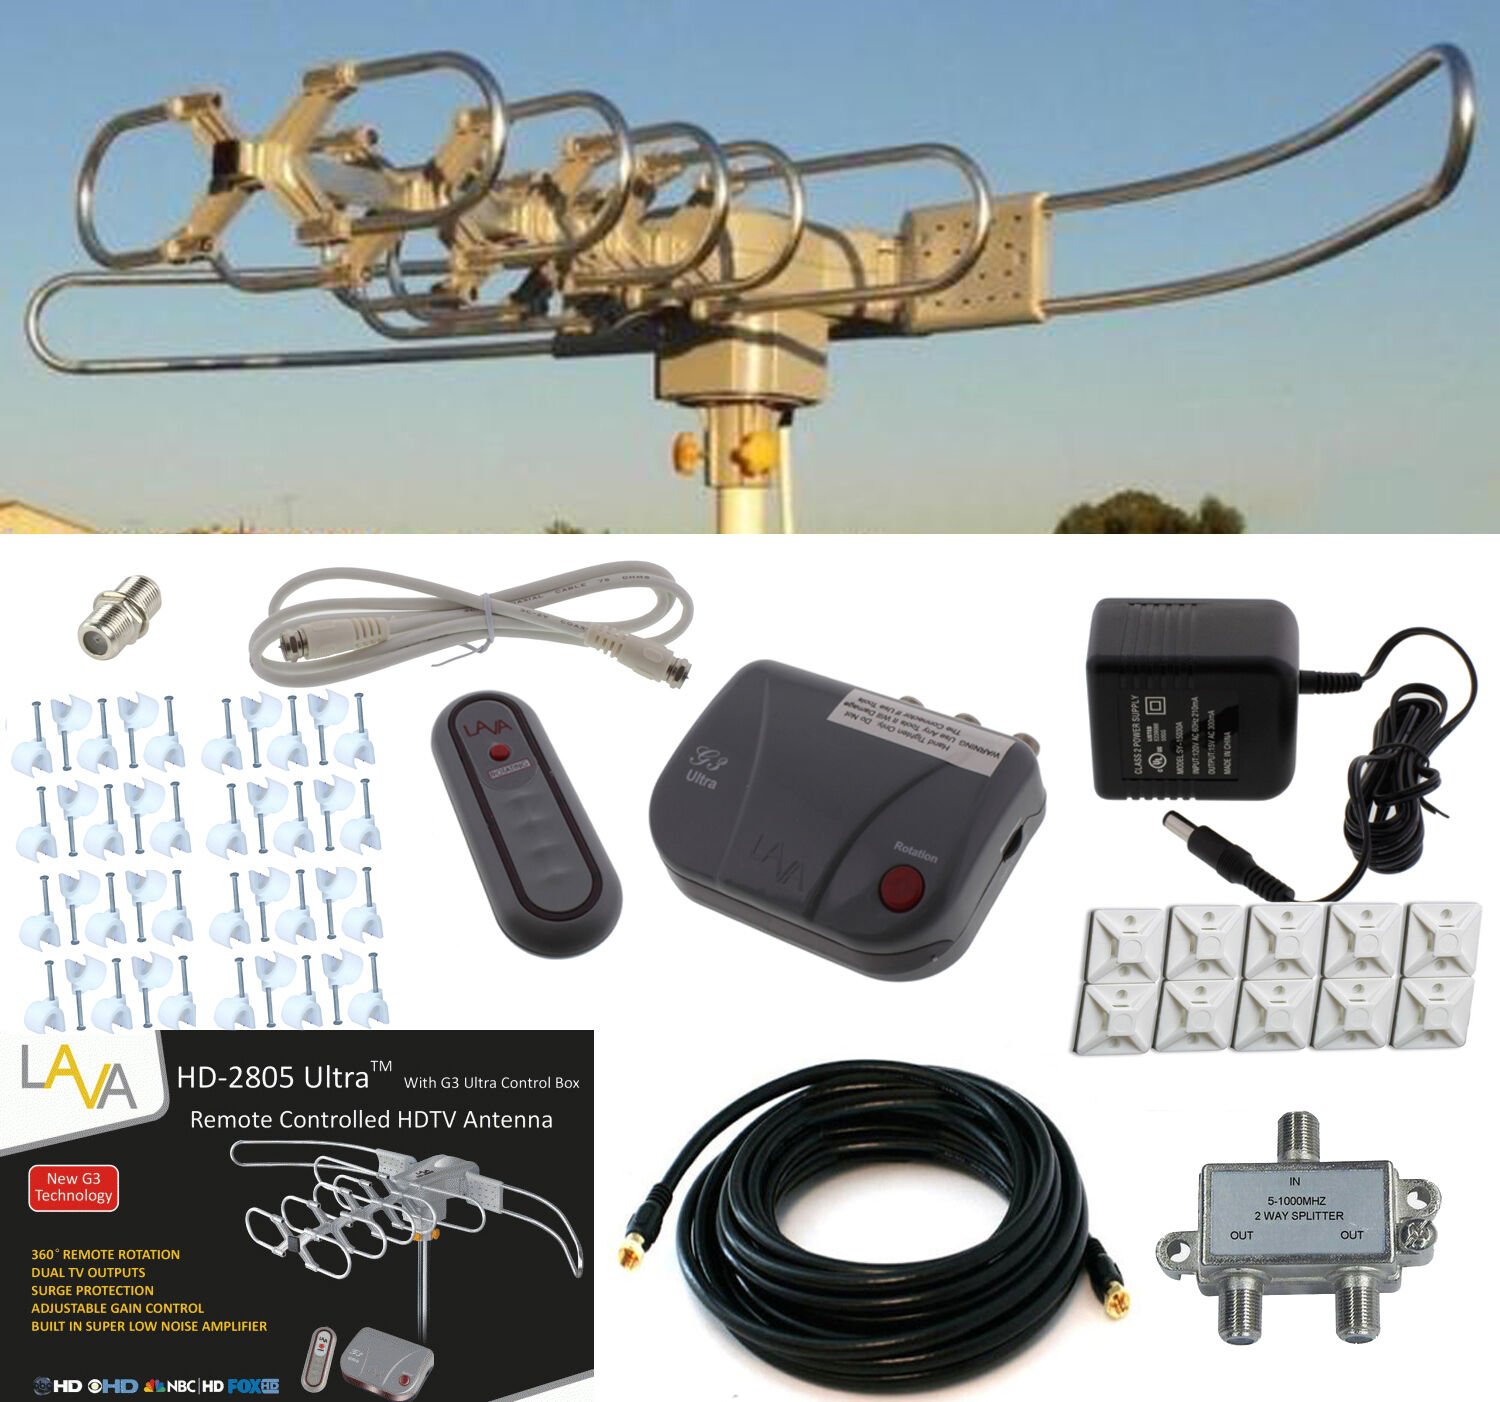 LAVA HD2805 HDTV DIGITAL ROTOR AMPLIFIED OUTDOOR TV ANTENNA CABLE Install Kit. Available Now for 69.95